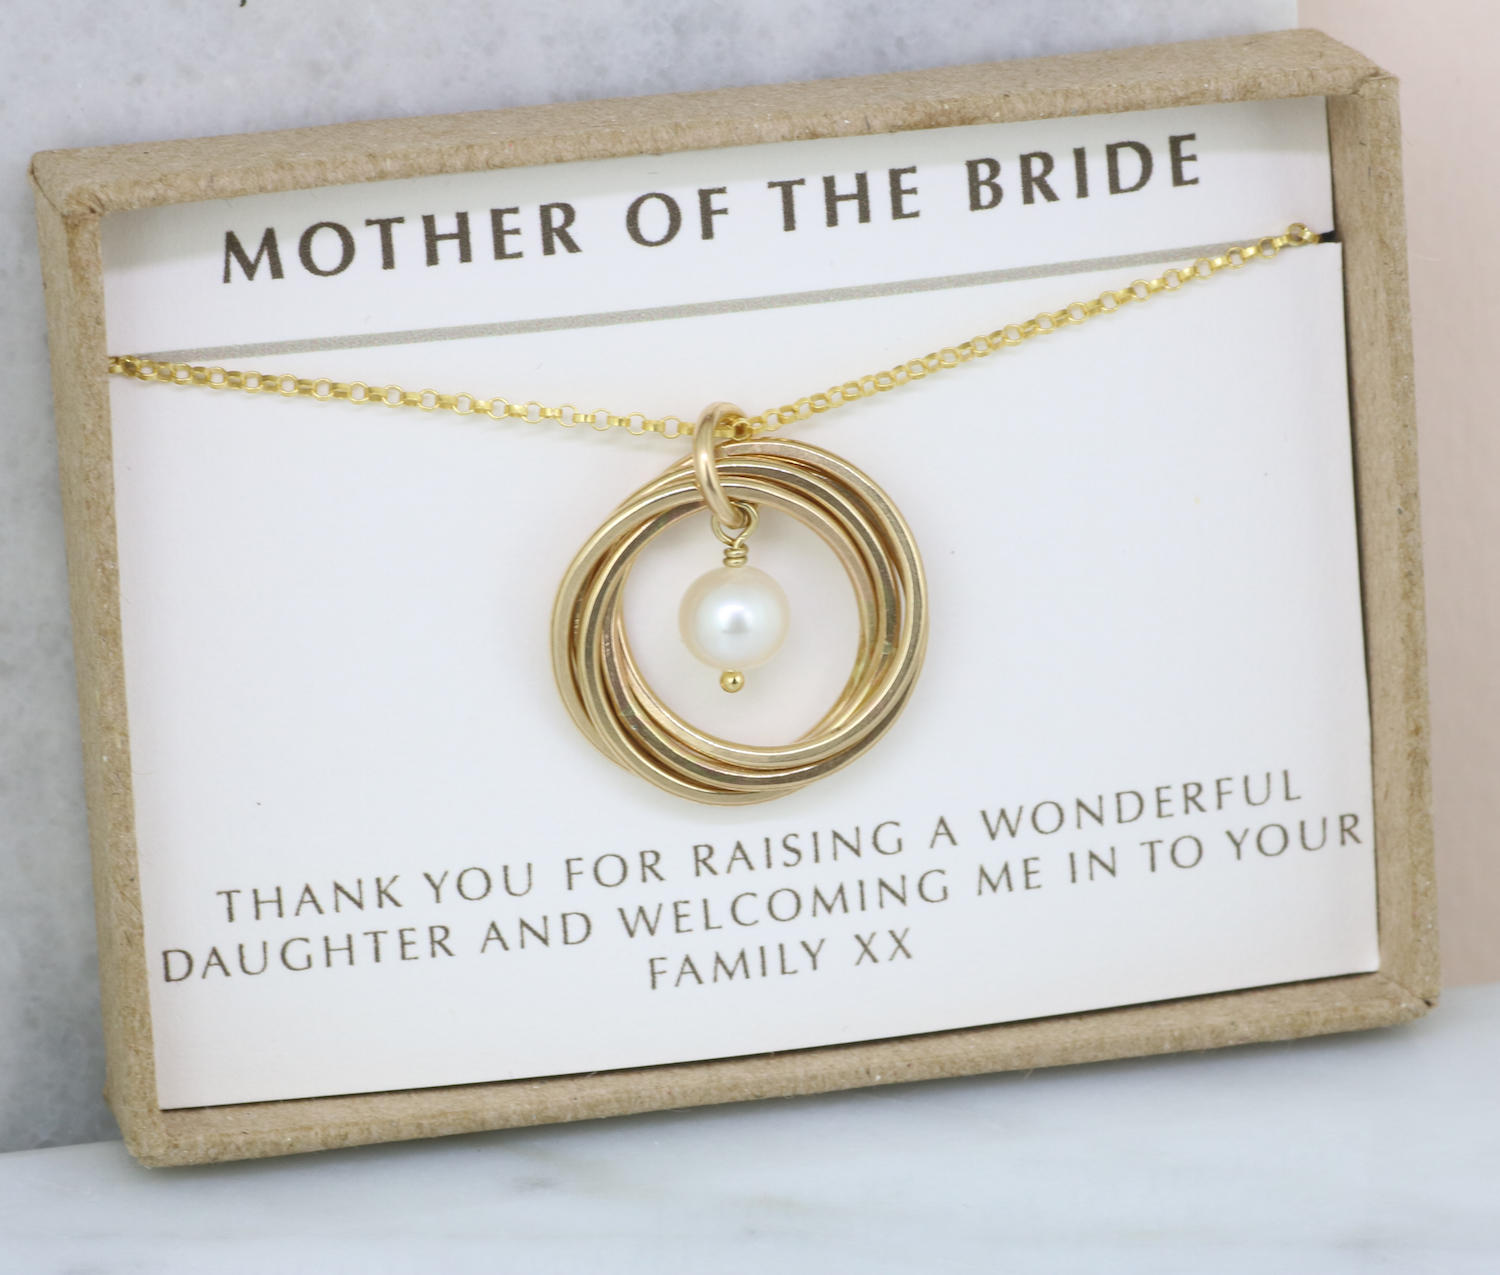 Mother Of The Bride Gift From Groom Meaningful For Mom